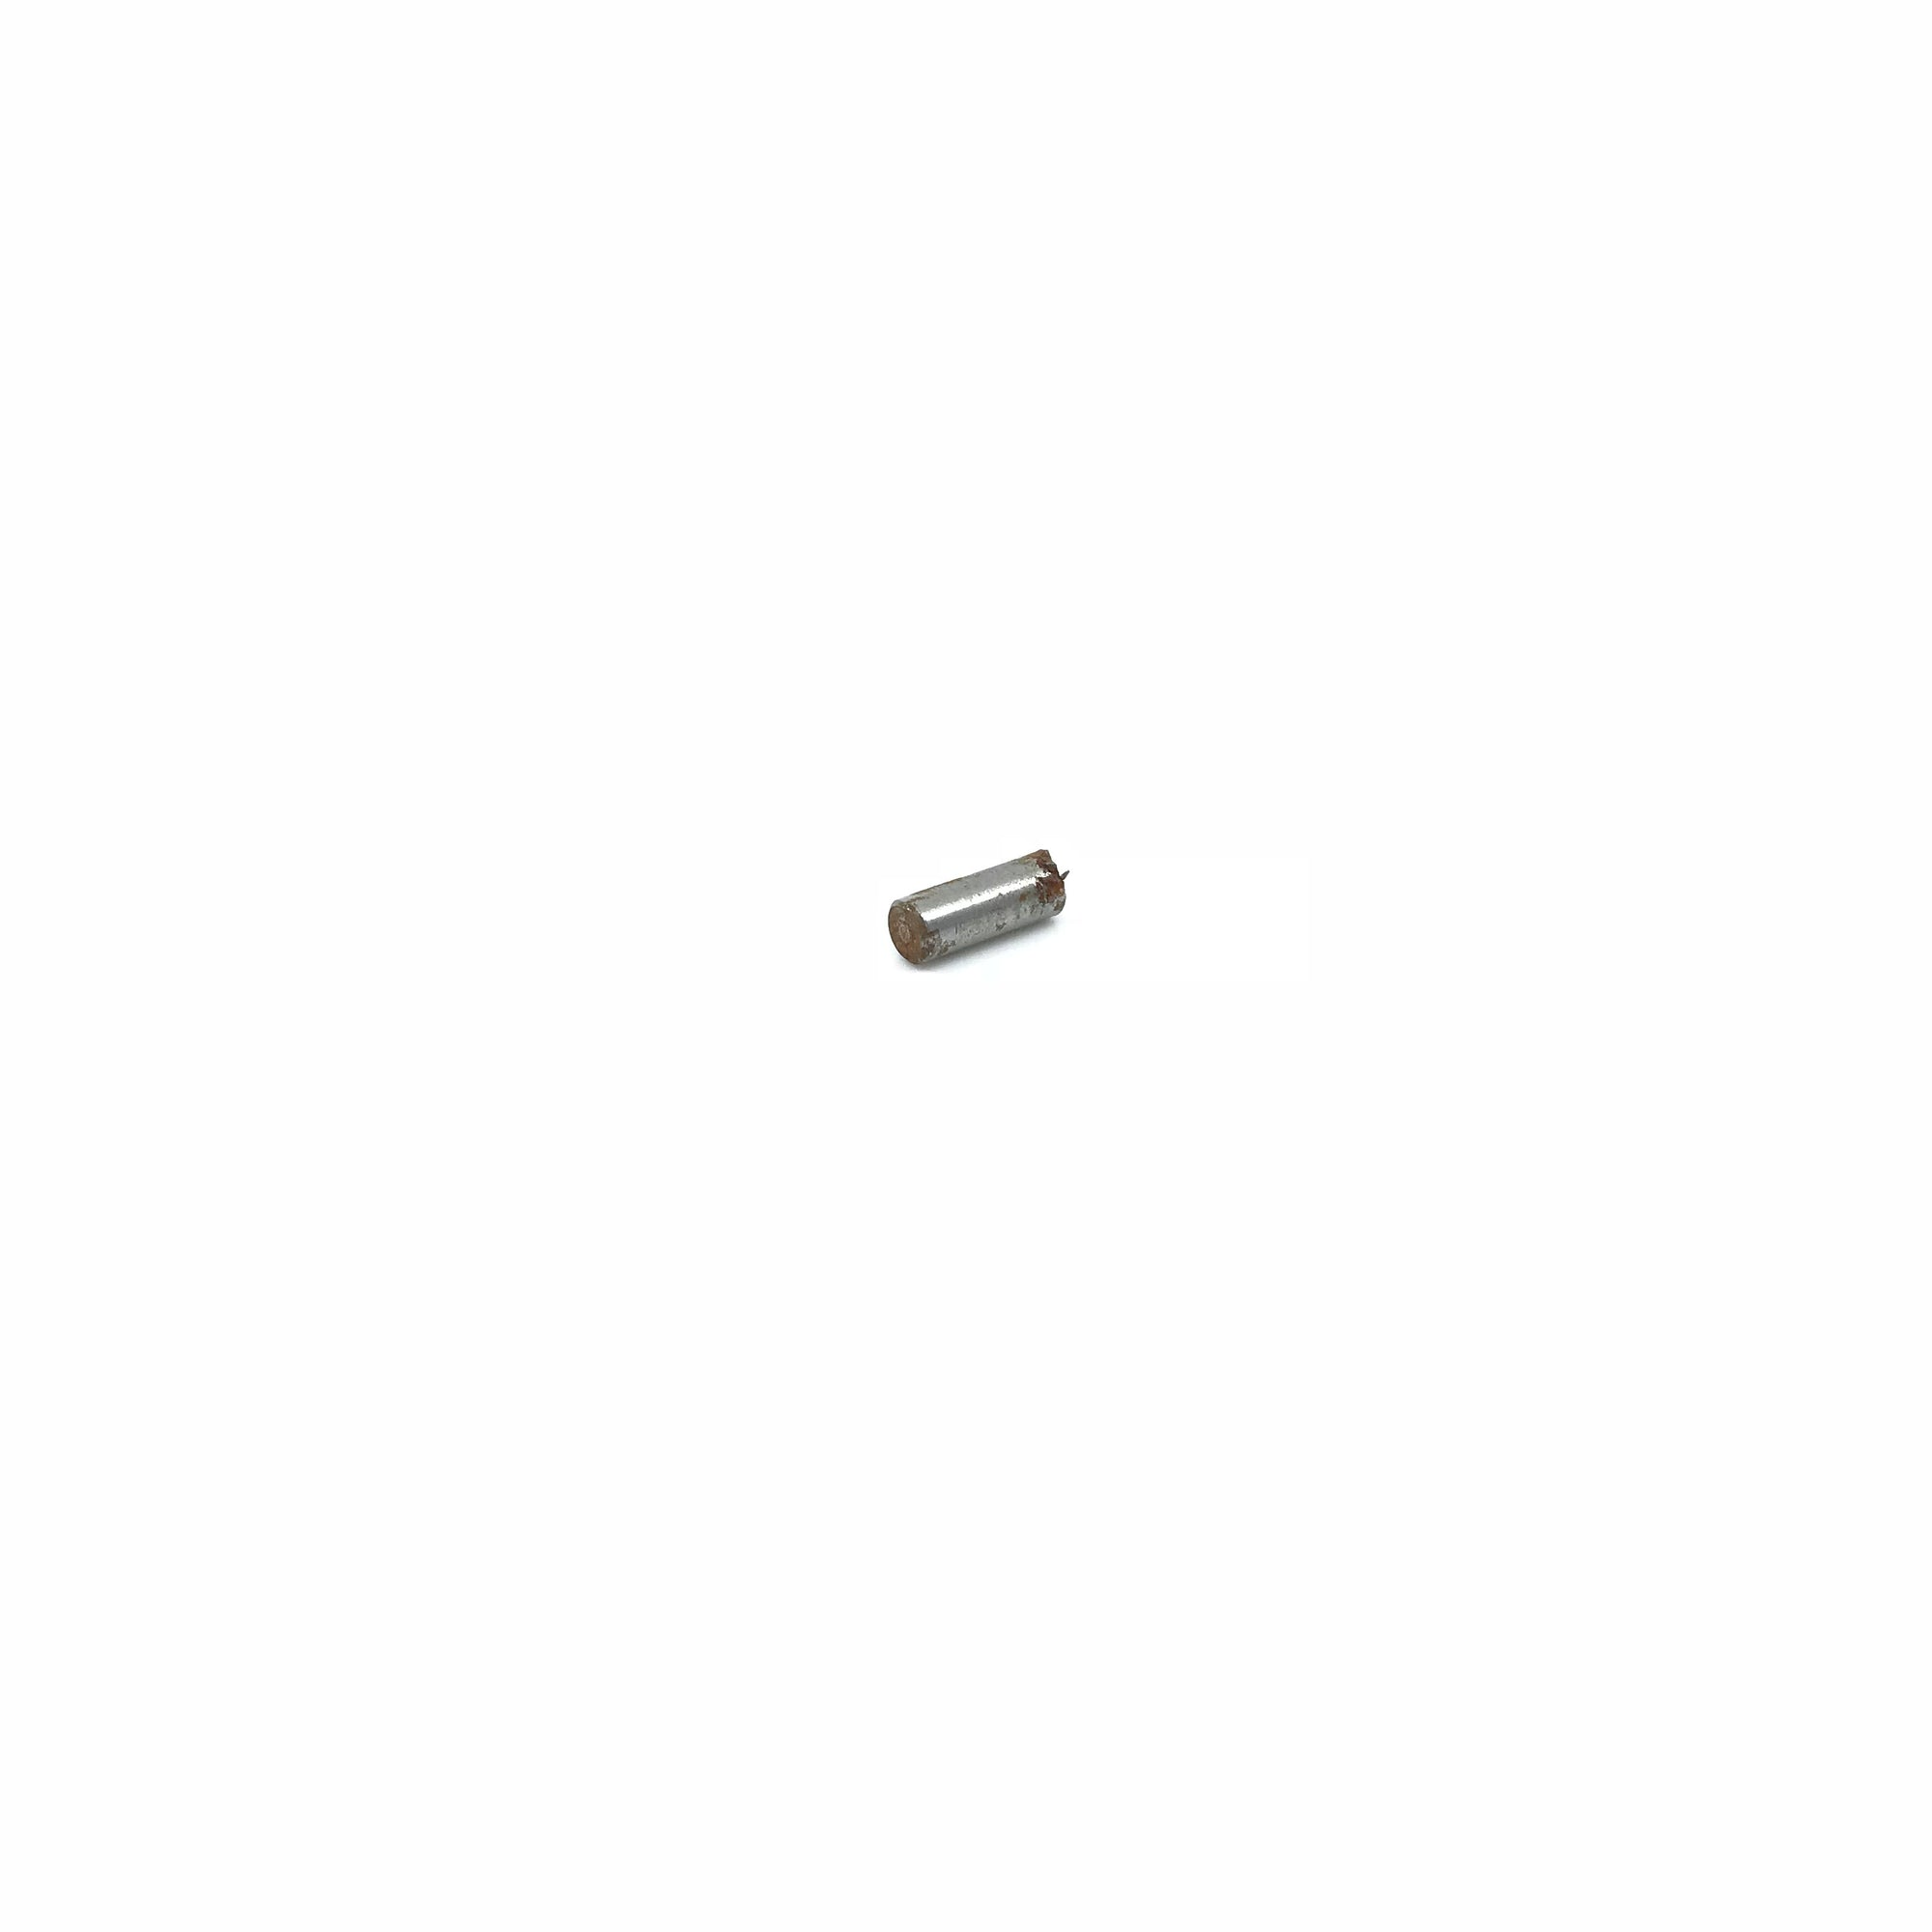 Colt Official Police Revolver Firing Pin Rivet